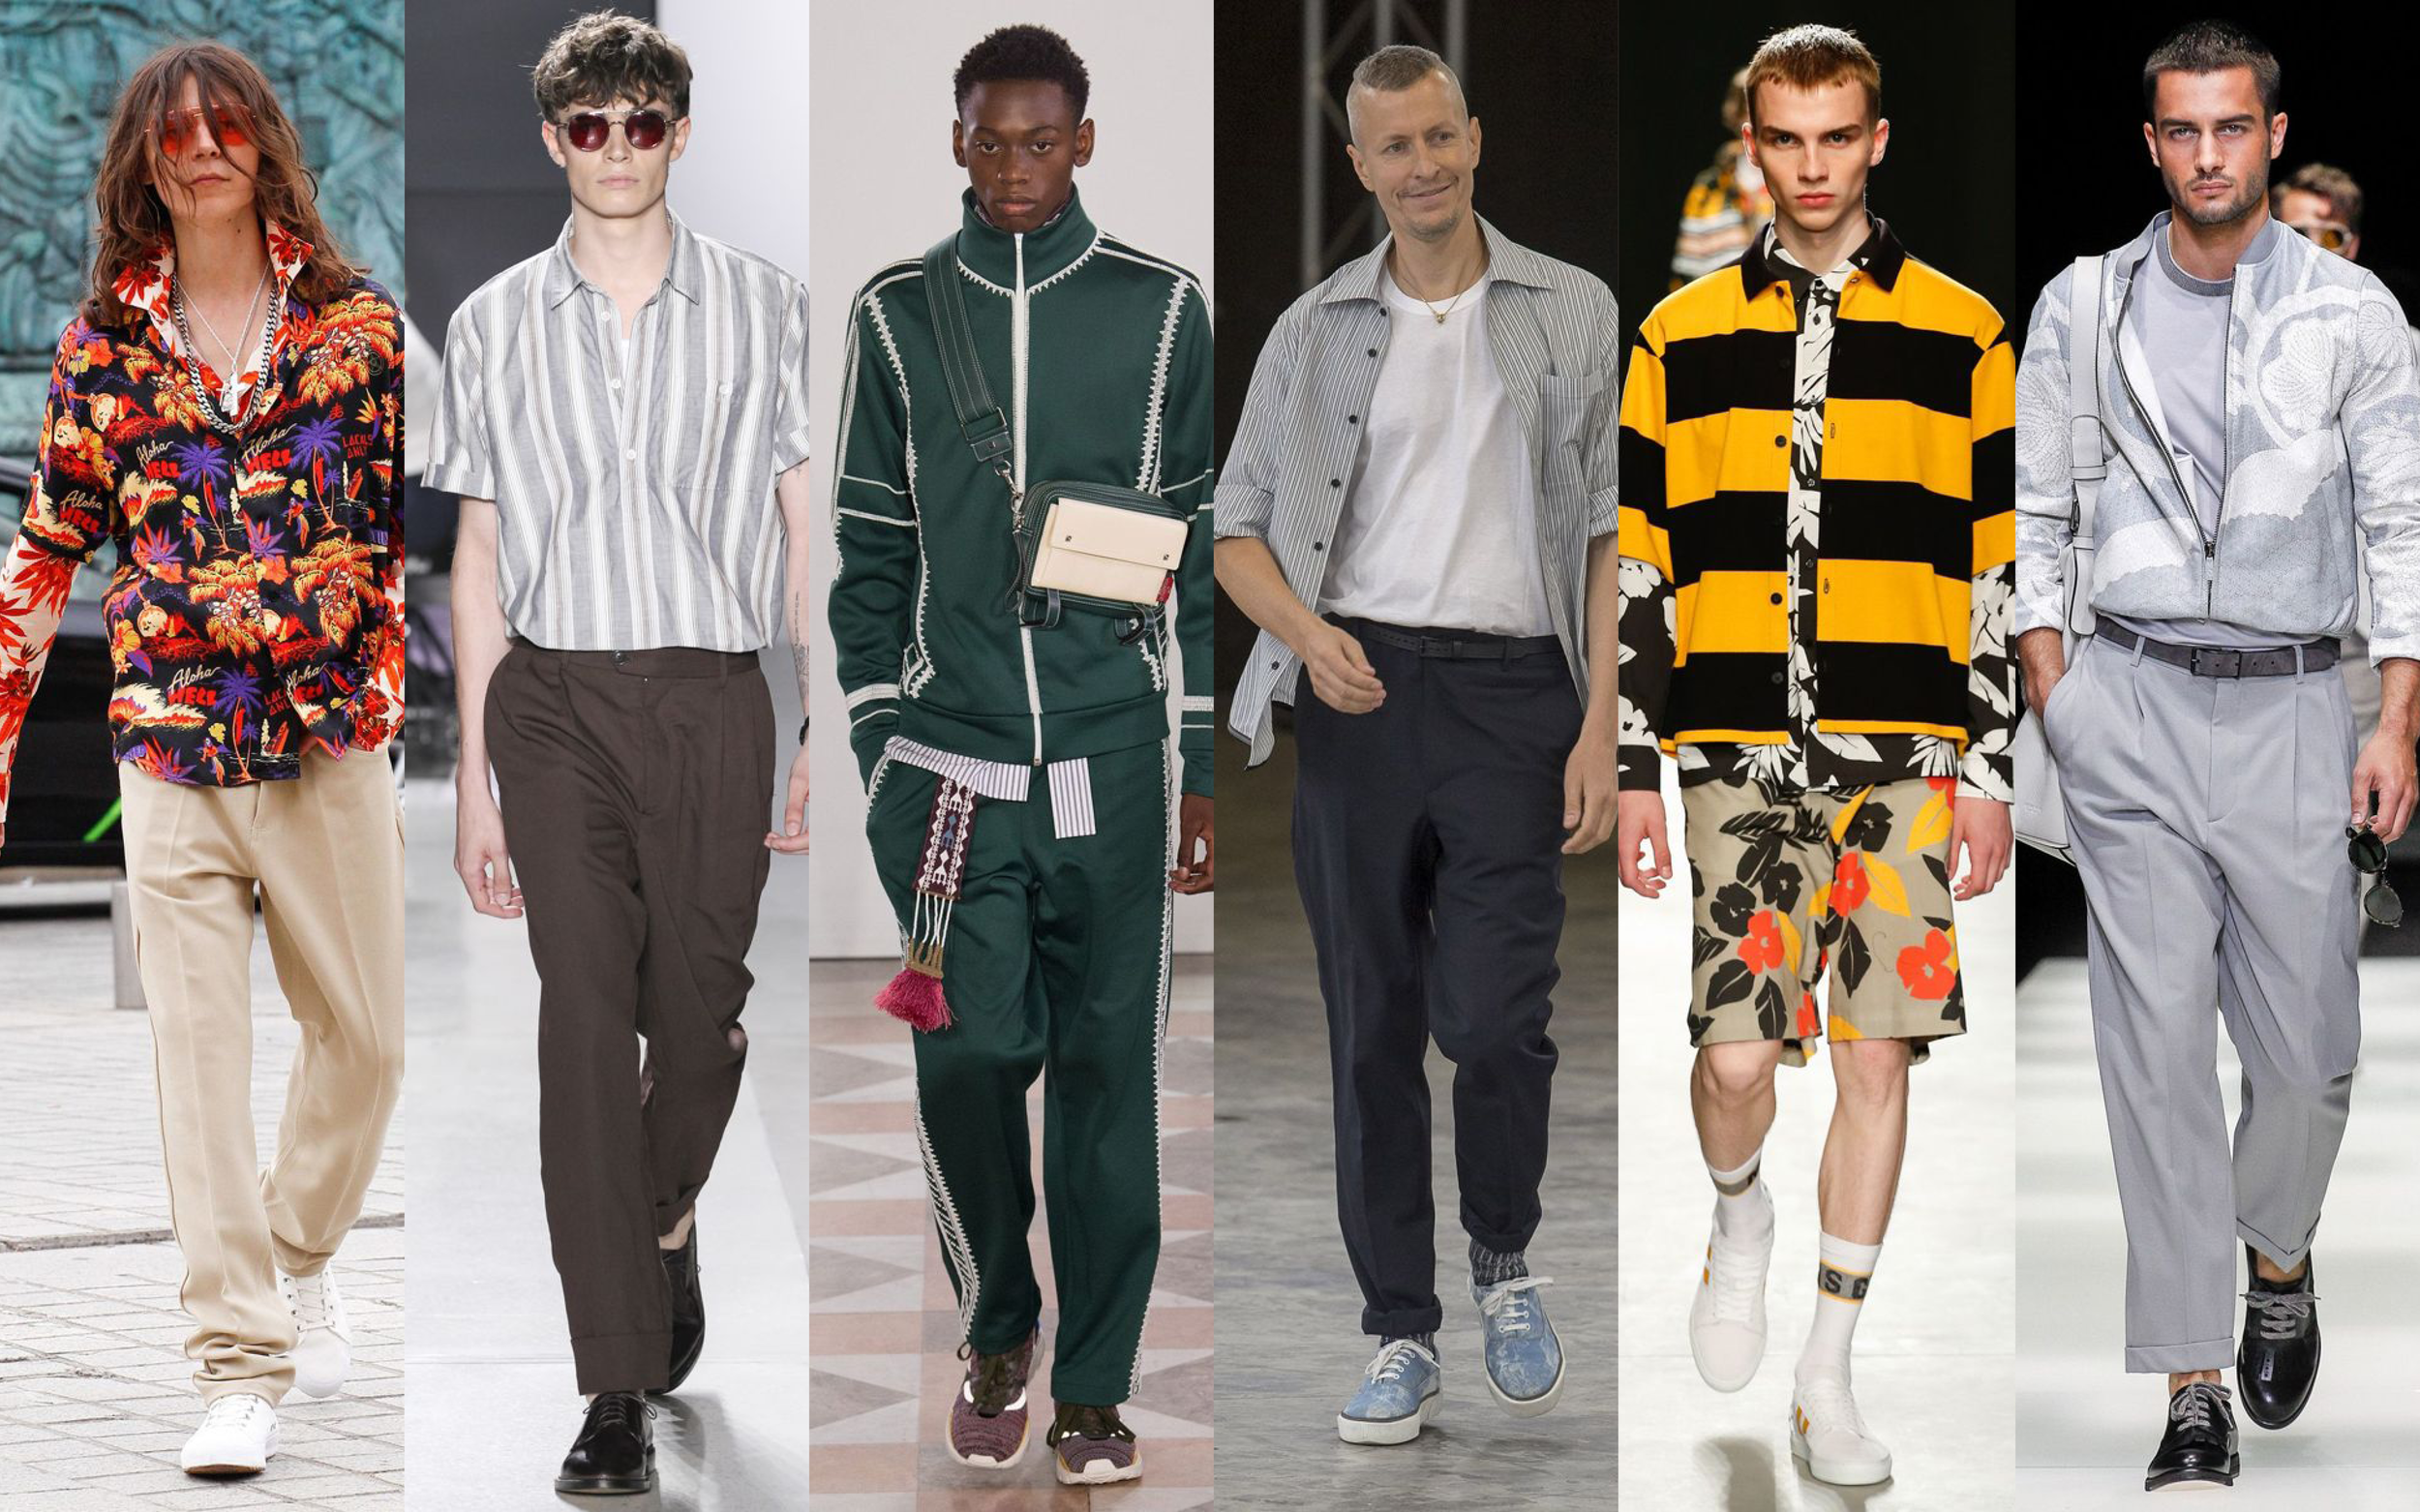 MEN'S SPRING SUMMER 2018 TRENDS: HOW TO ROCK THEM ON CAMPUS